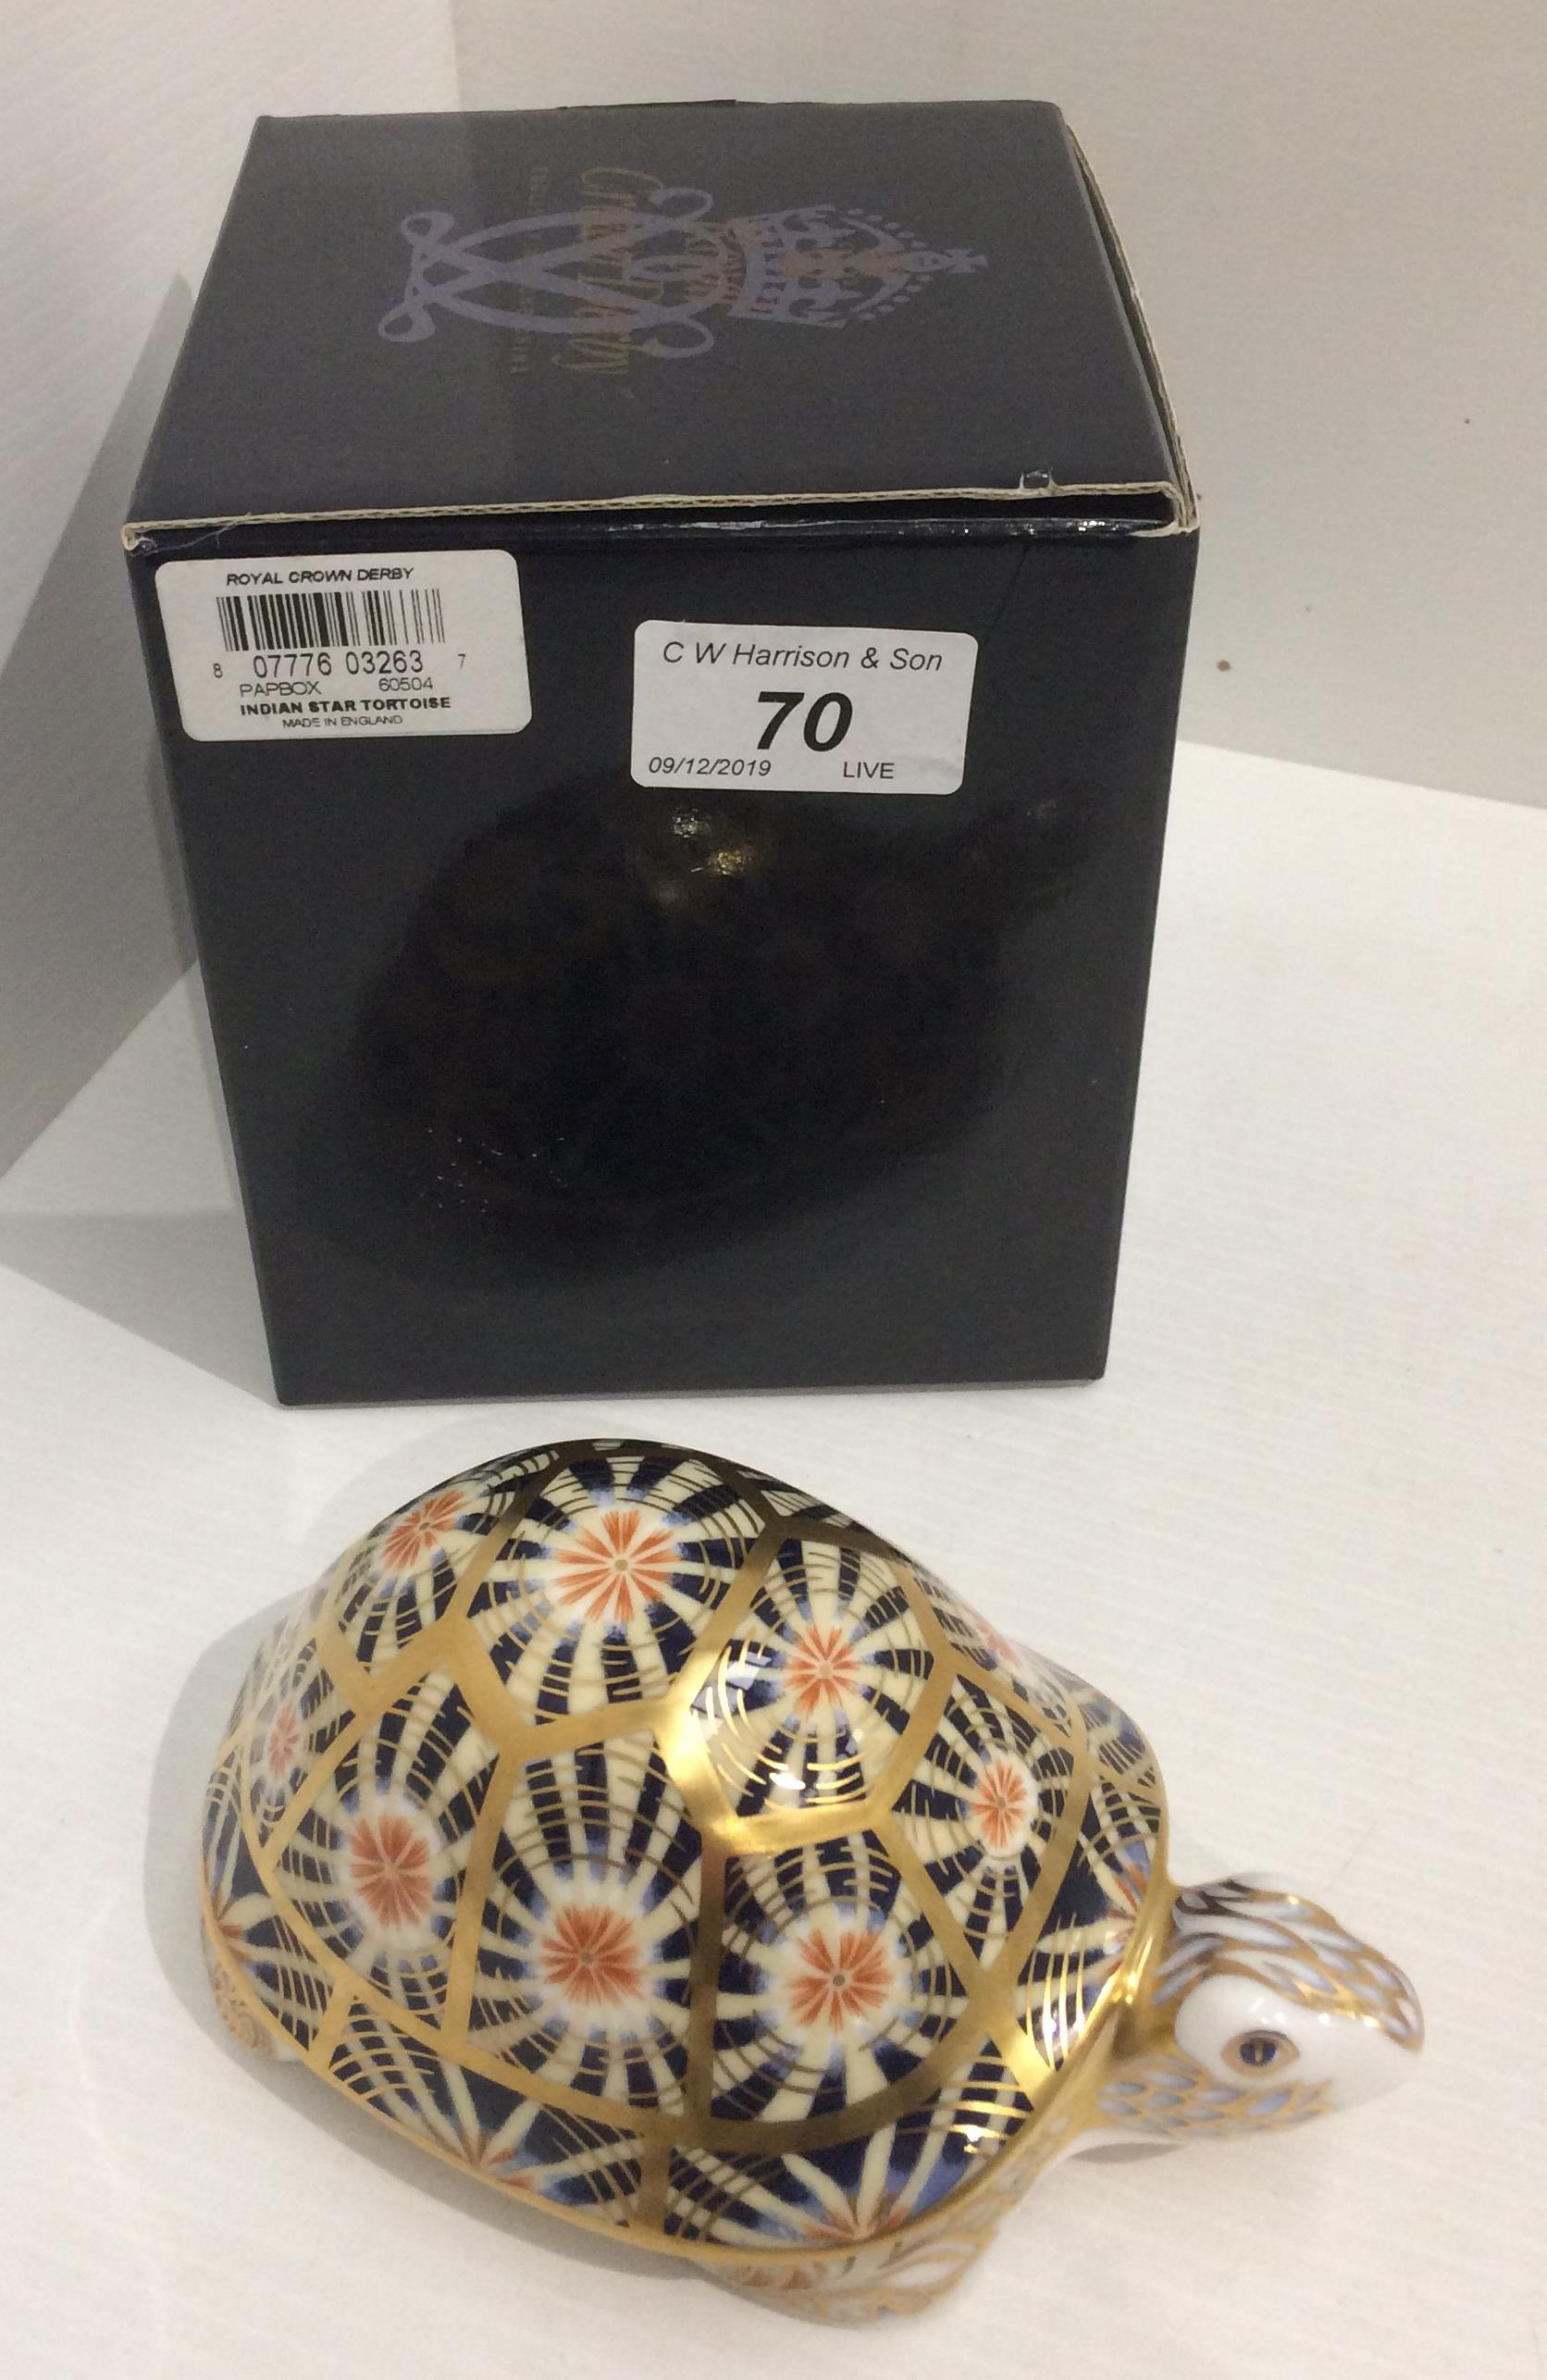 Lot 70 - A Royal Crown Derby bone china Indian Star Tortoise paperweight - 15cm long,